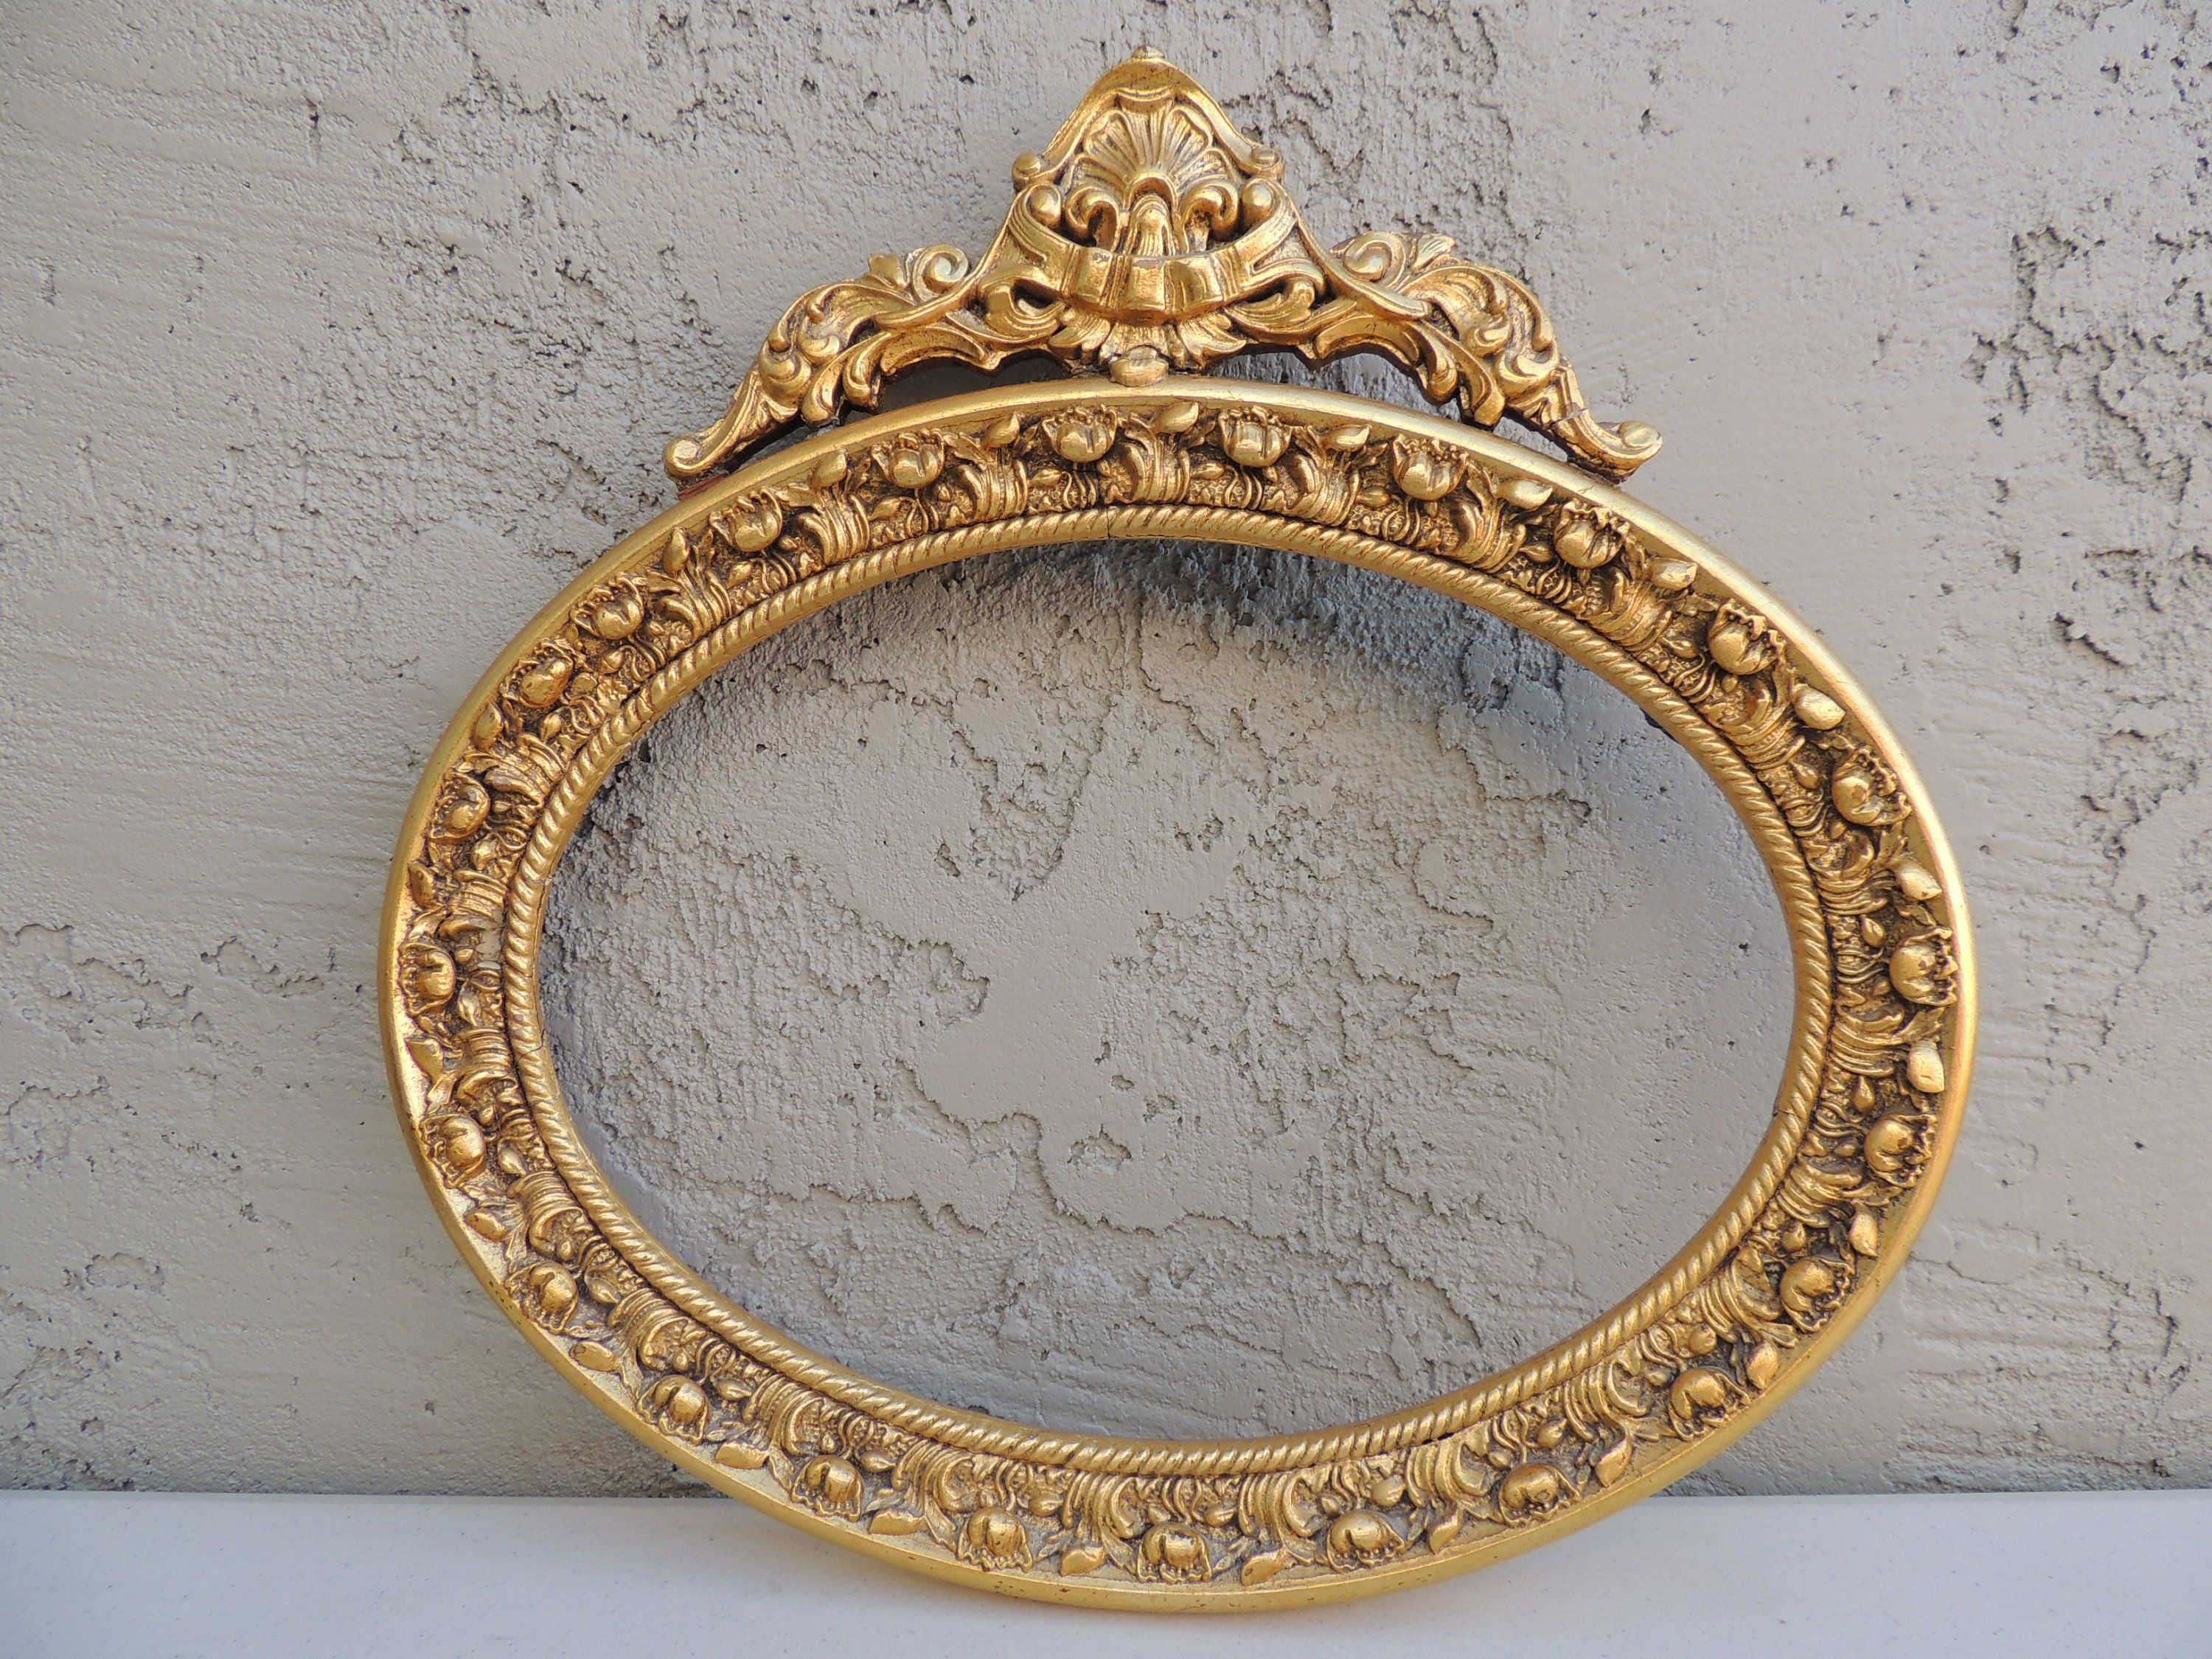 Antique Exquisite Wood Gesso Oval Frame